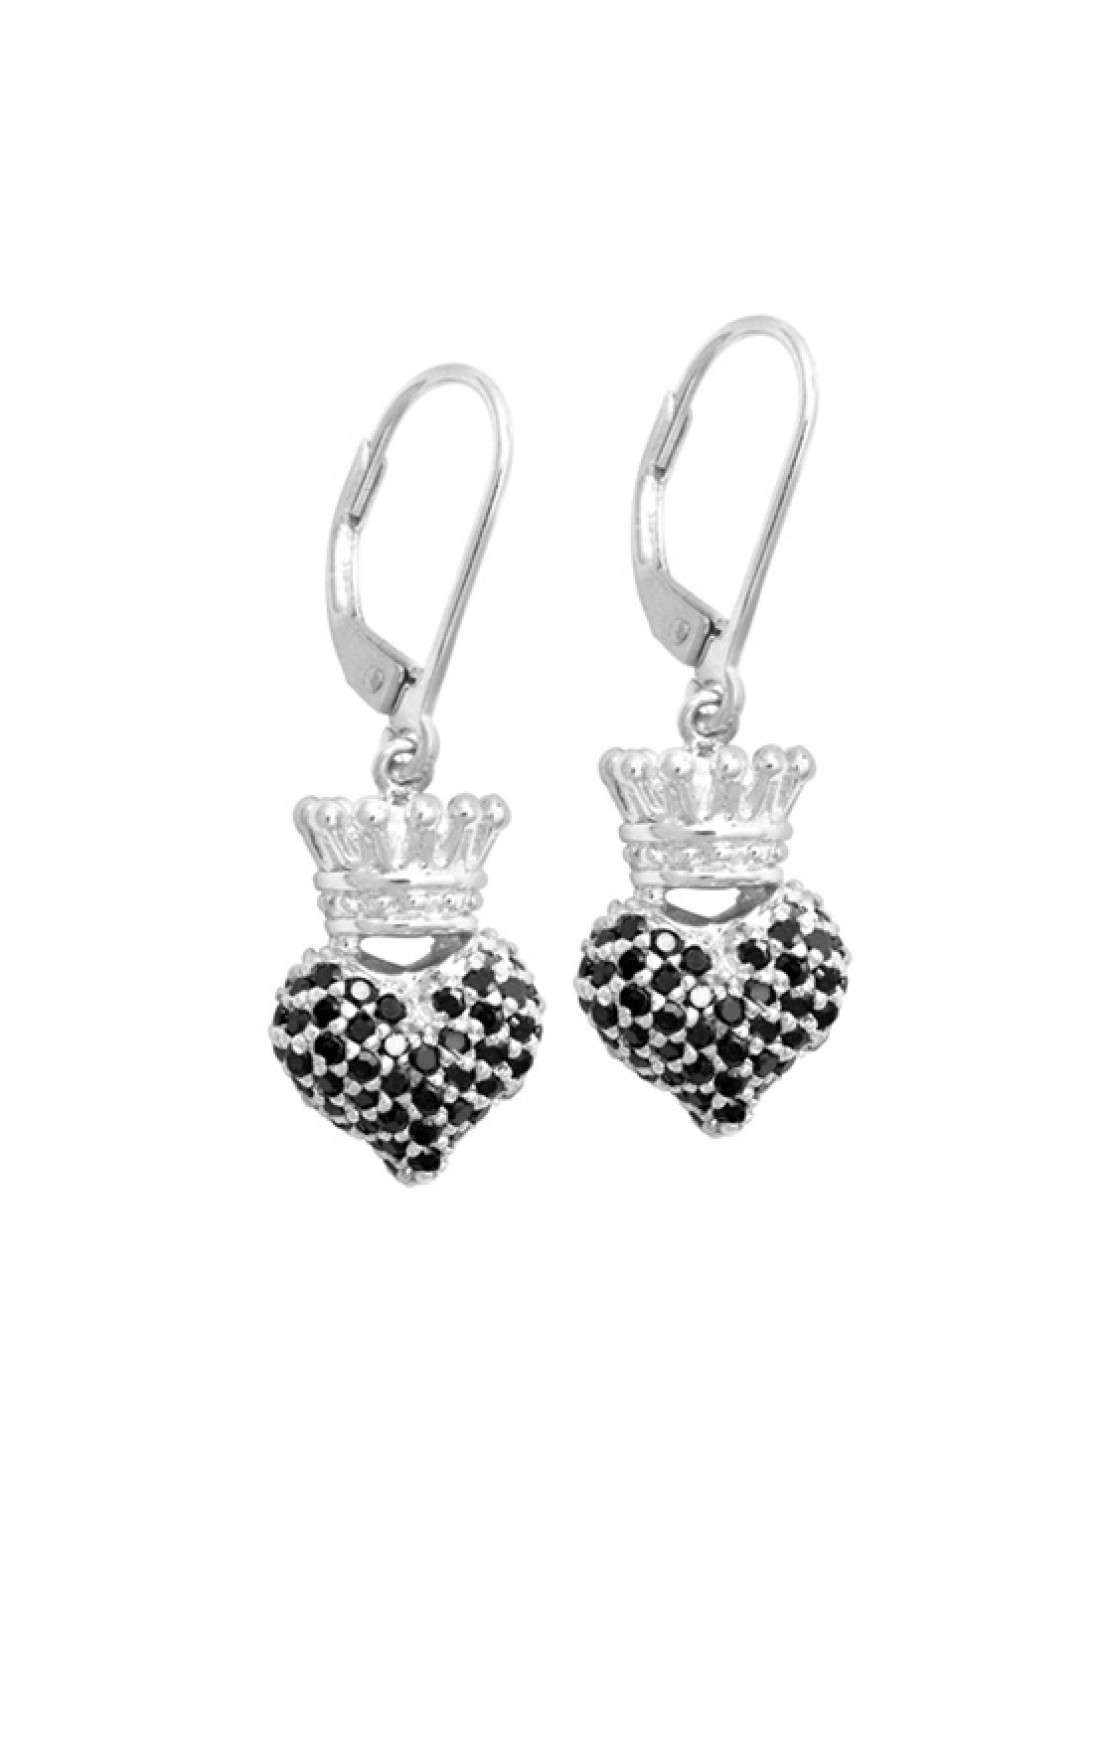 King Baby - Black Cz 3D Crowned Heart Earrings (Q60-8020)